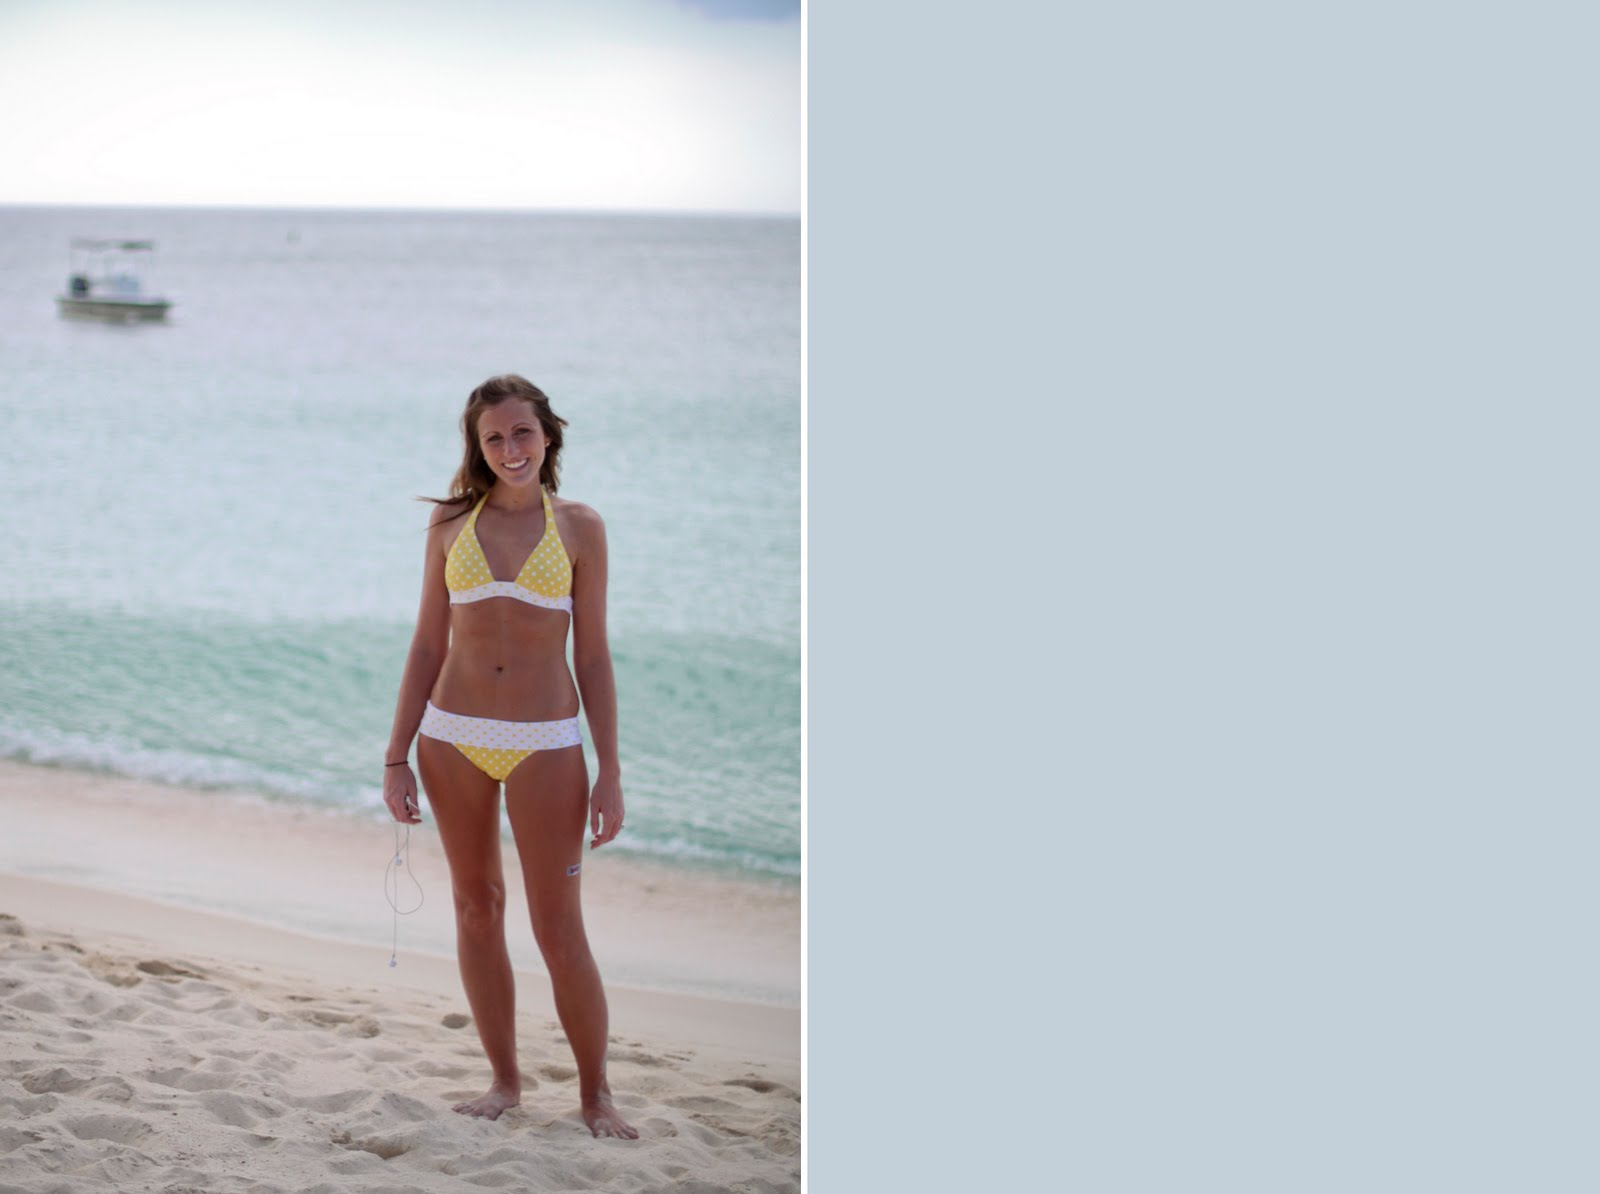 The Grand Life: Itsy Bitsy, Teeny Weeny, Yellow Polka Dot Bikini